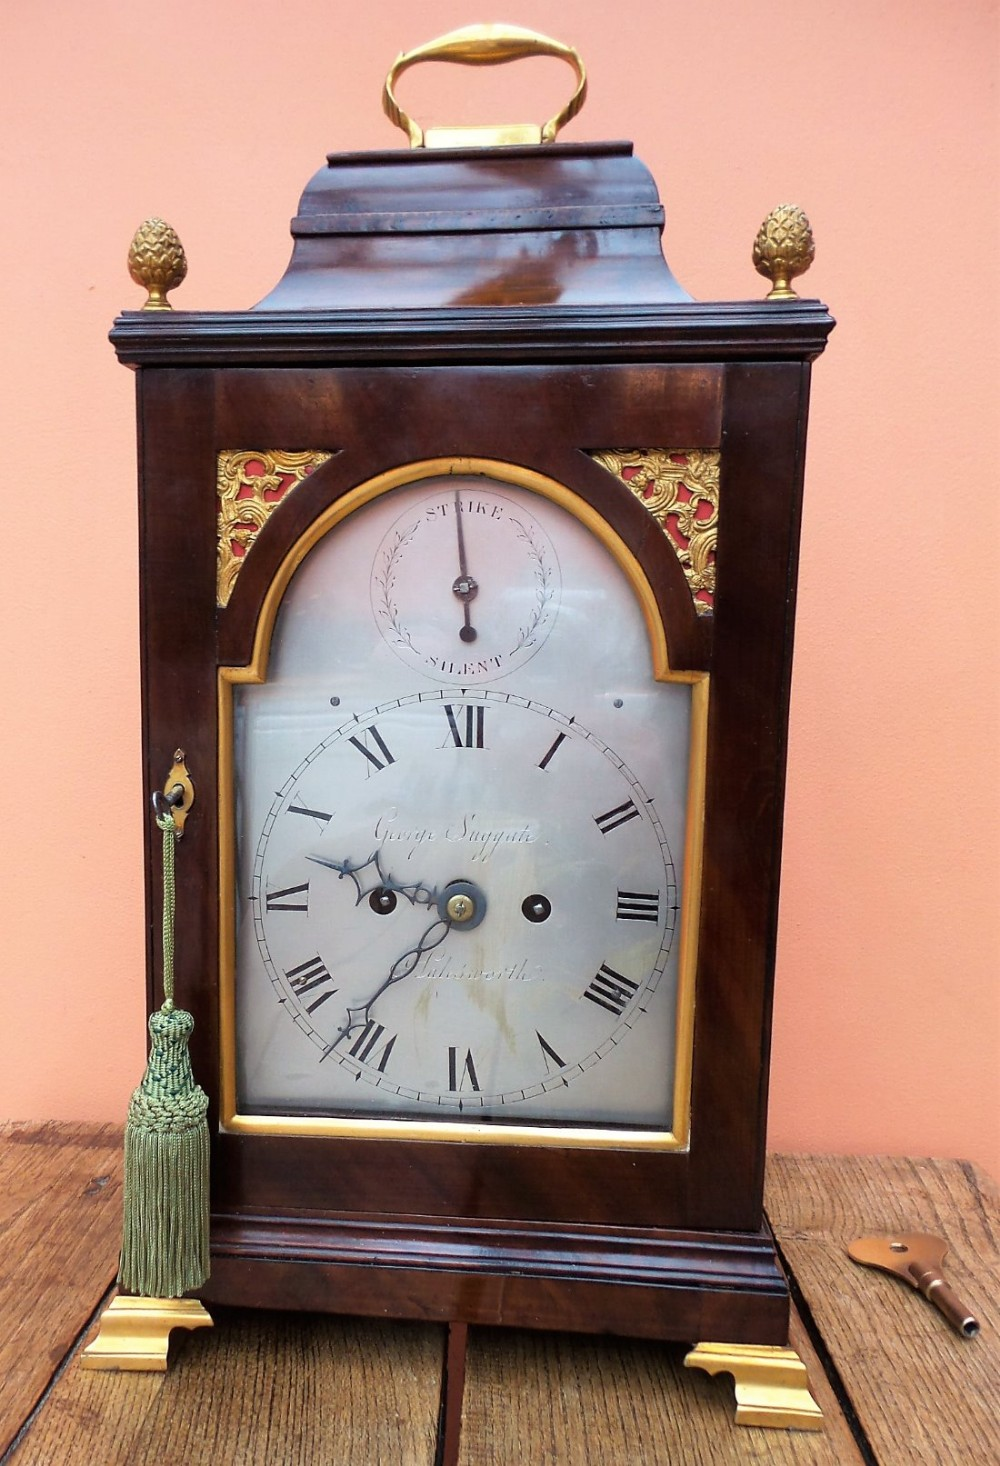 18th century verge bracket clock